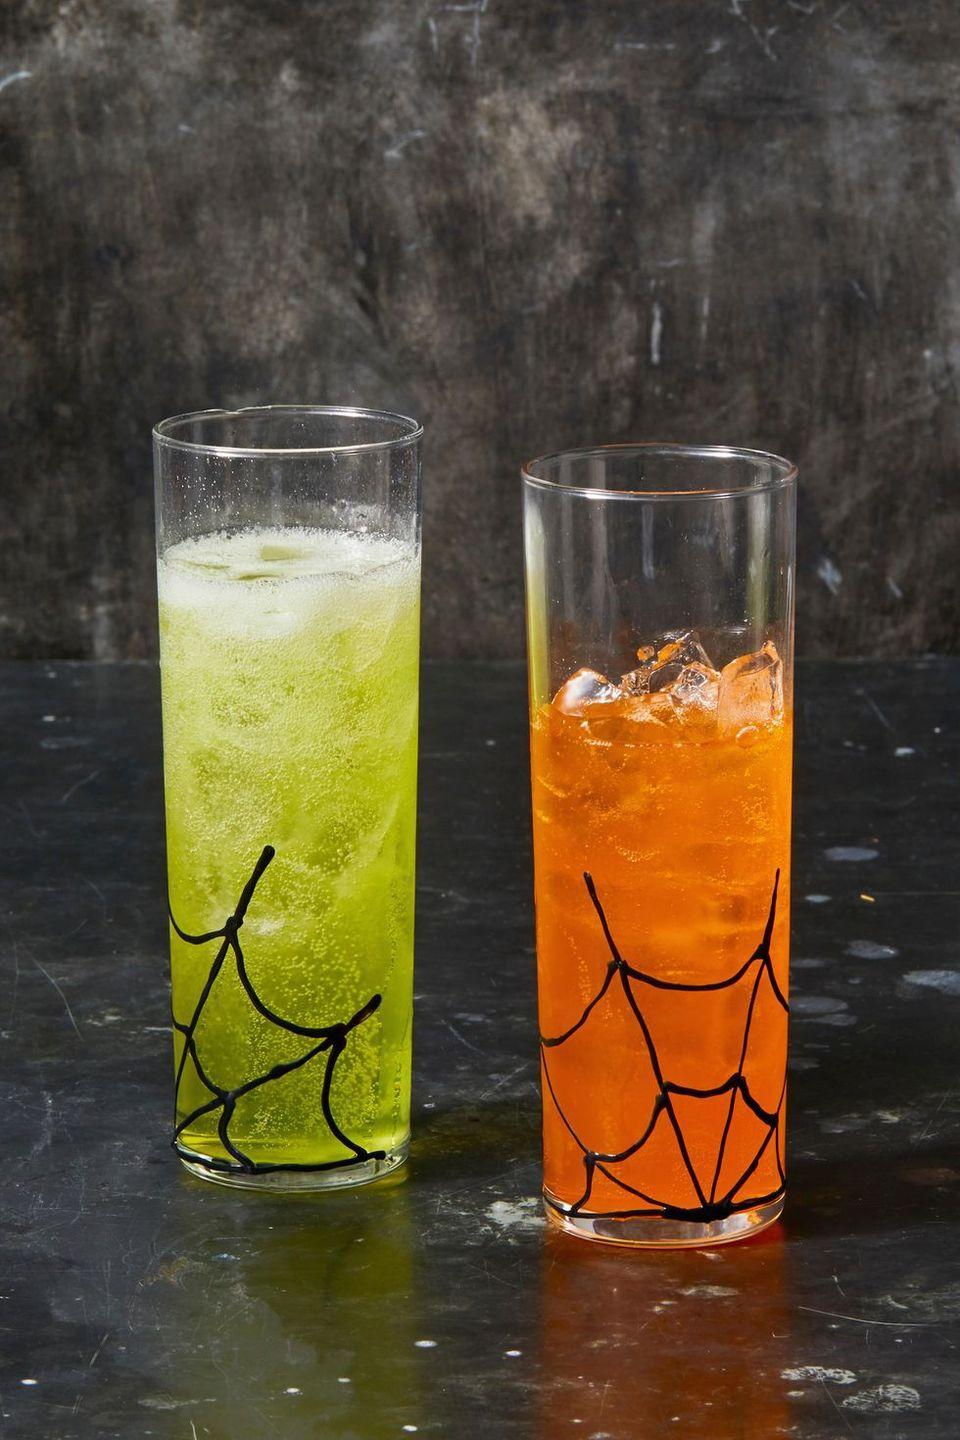 <p>Give plastic or glass tumblers a Halloween makeover by drawing spider web patterns with puff paint. Serve neon-colored drinks, like orange soda, for a pop of color.</p>